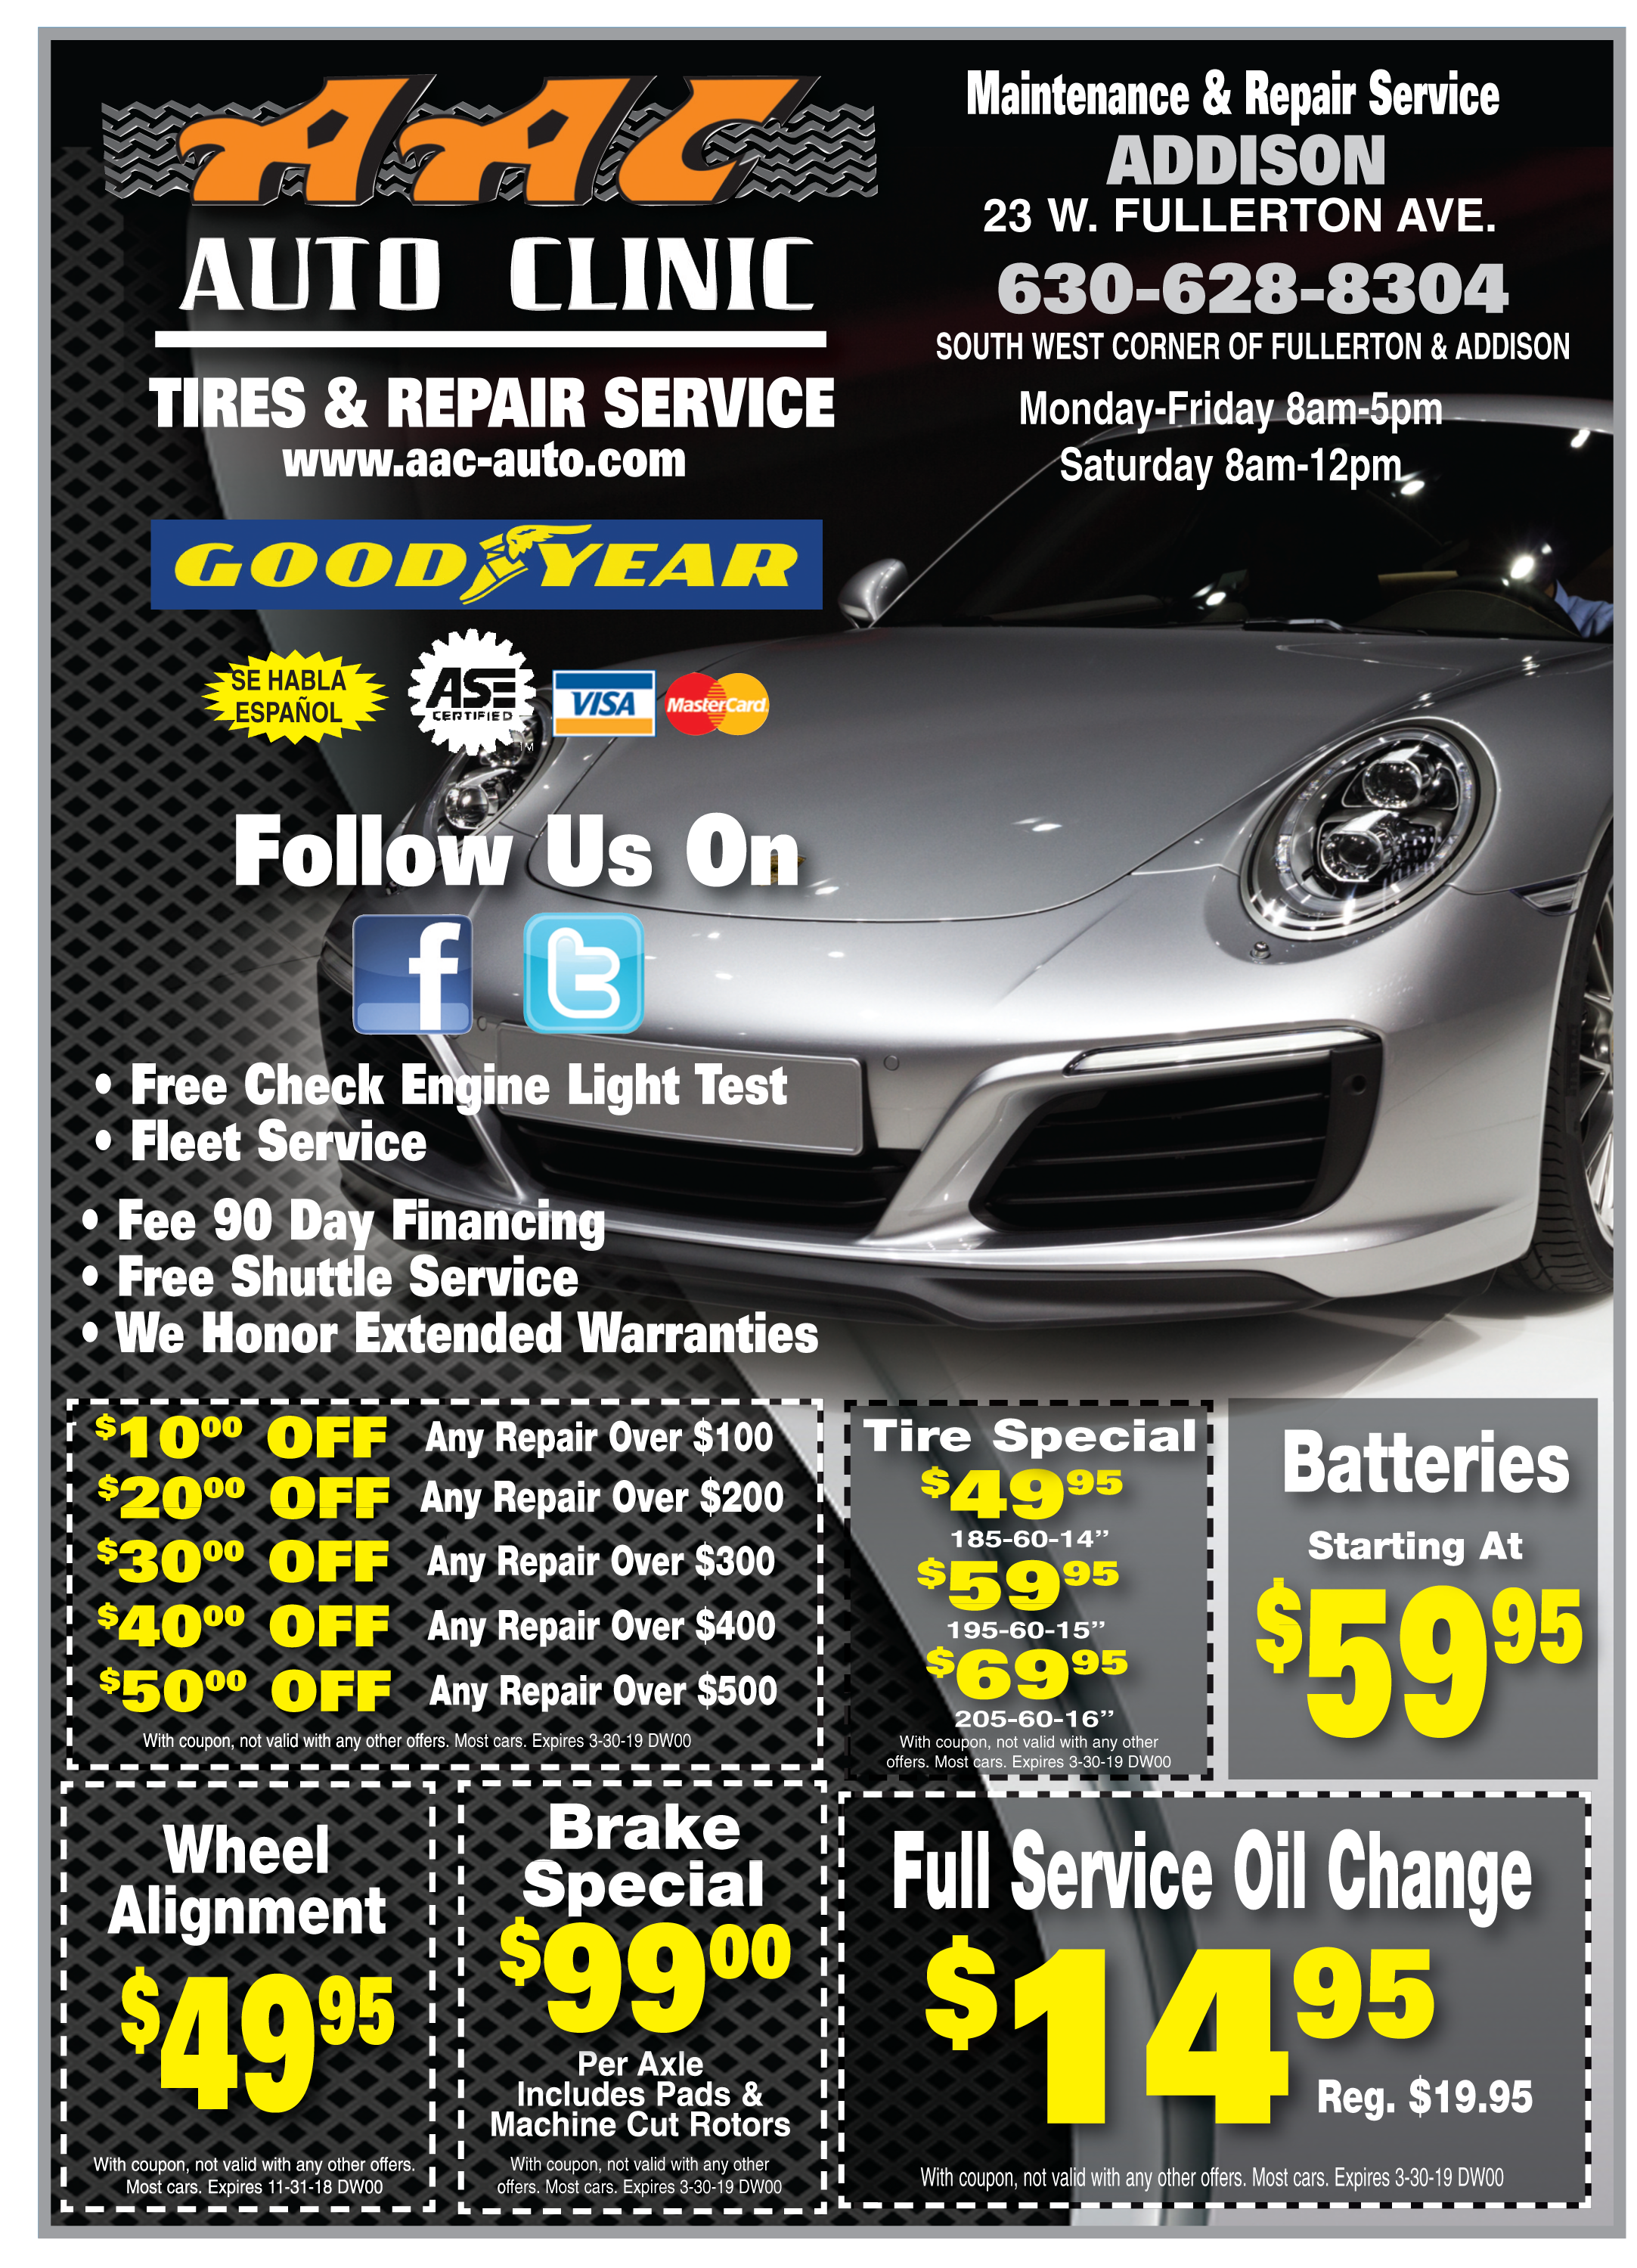 Car Alignment Coupons >> Special Deals Aac Auto Clinic